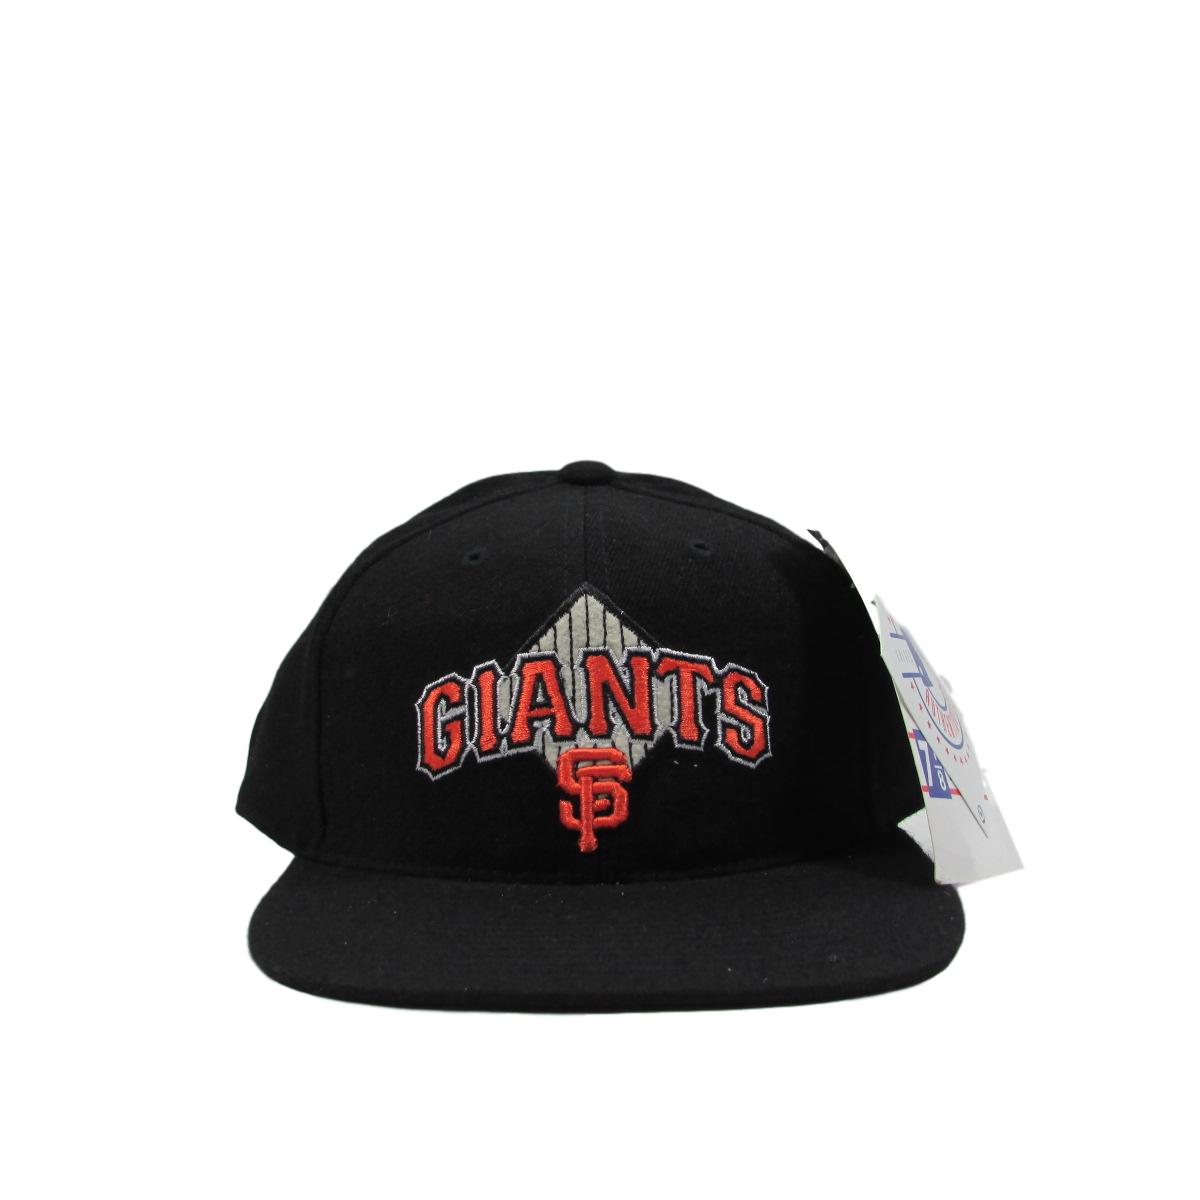 San Francisco Giants 1994 Logo Deadstock Fitted Baseball Cap Sports Specialties Sz 7 1/8